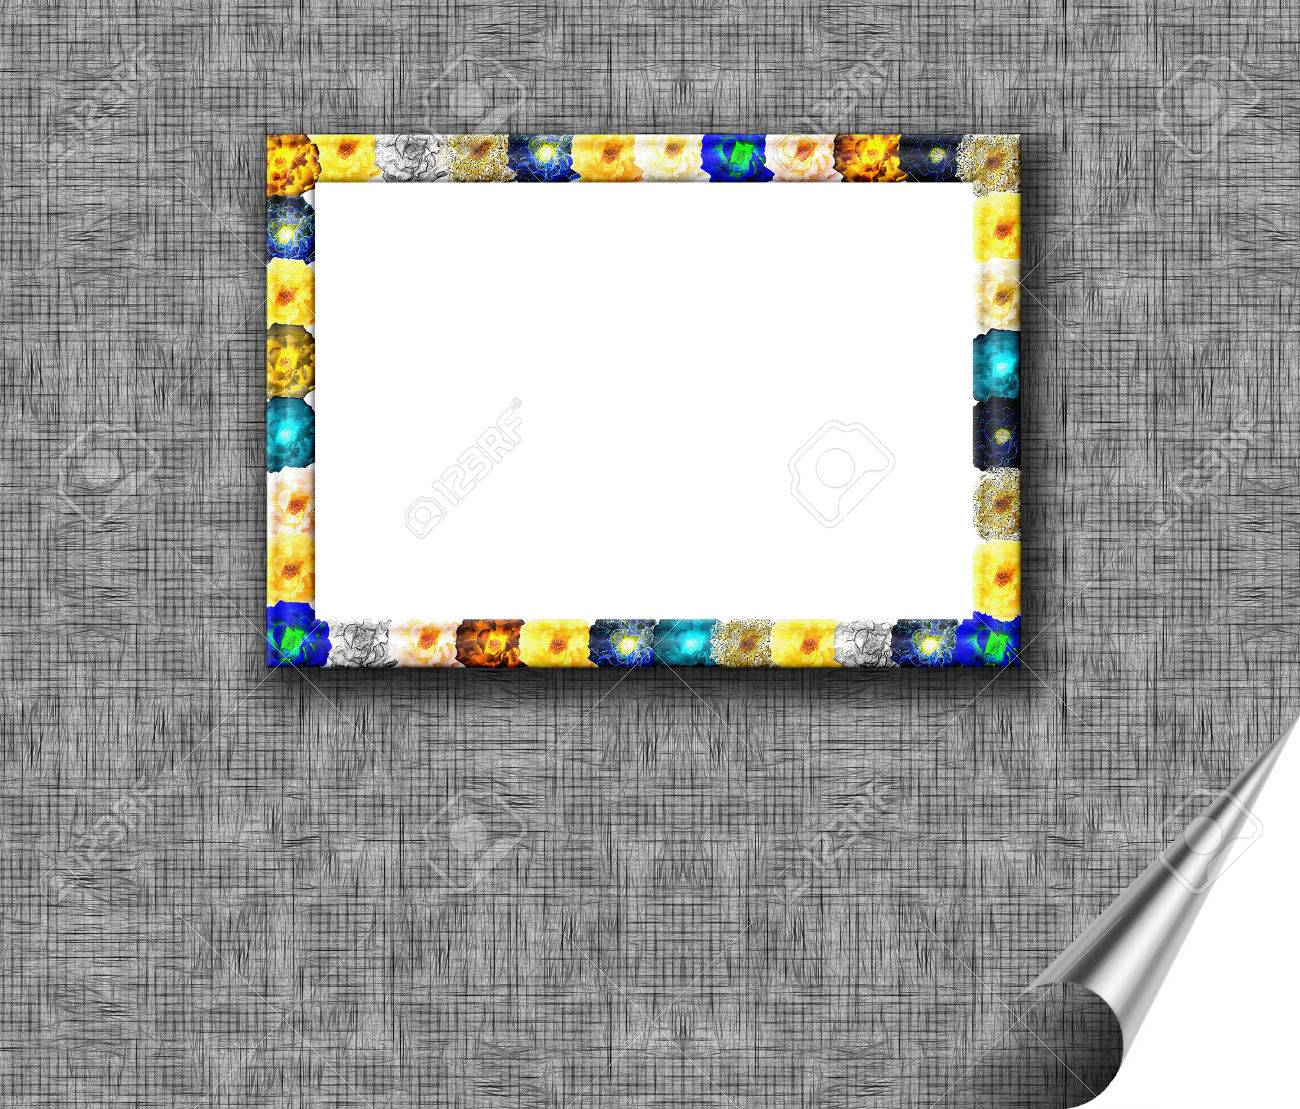 The rectangular frame is embossed with the texture of the images